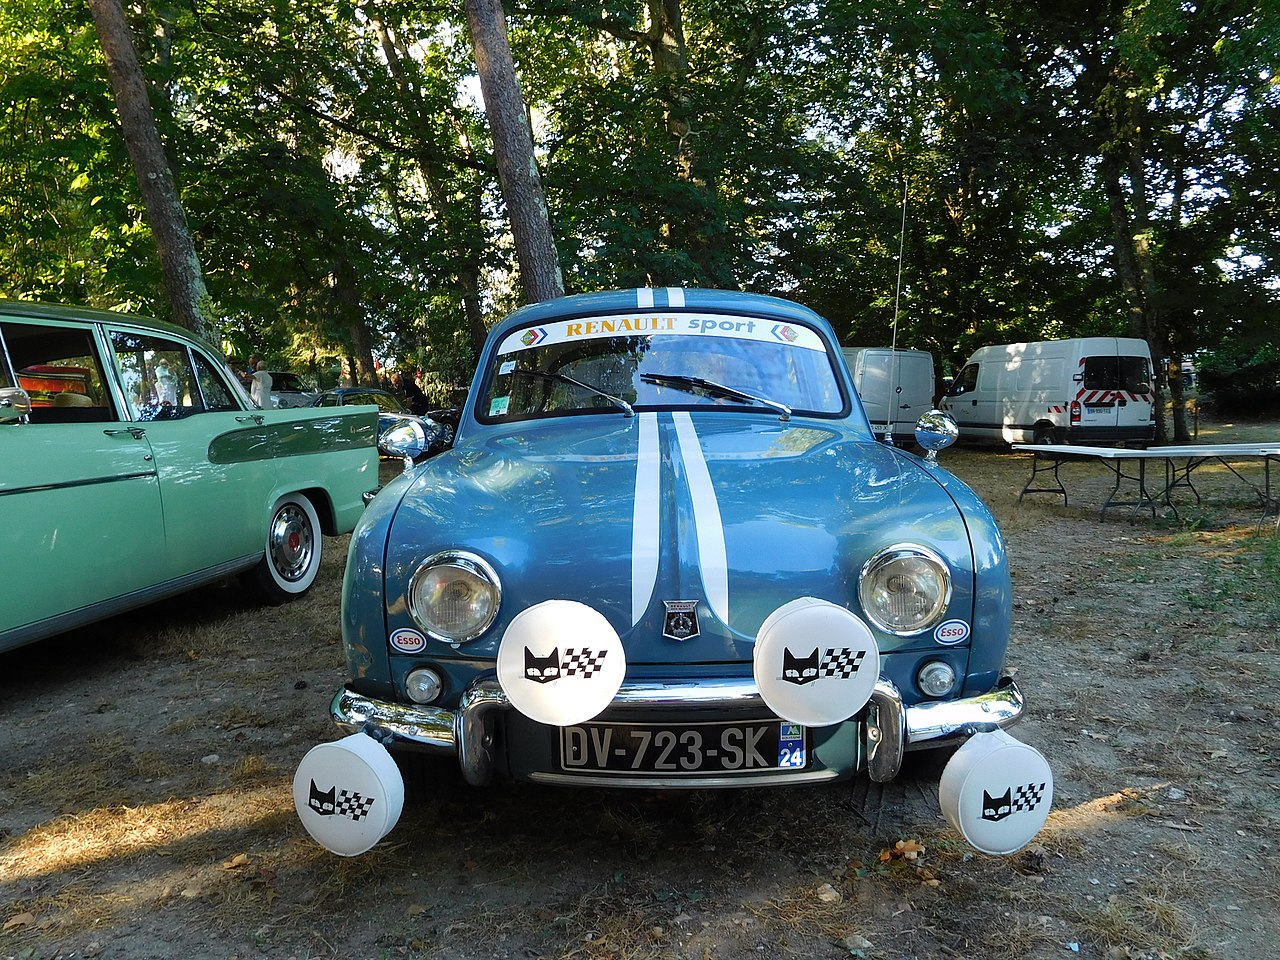 Renault Dauphine with Marchal lights